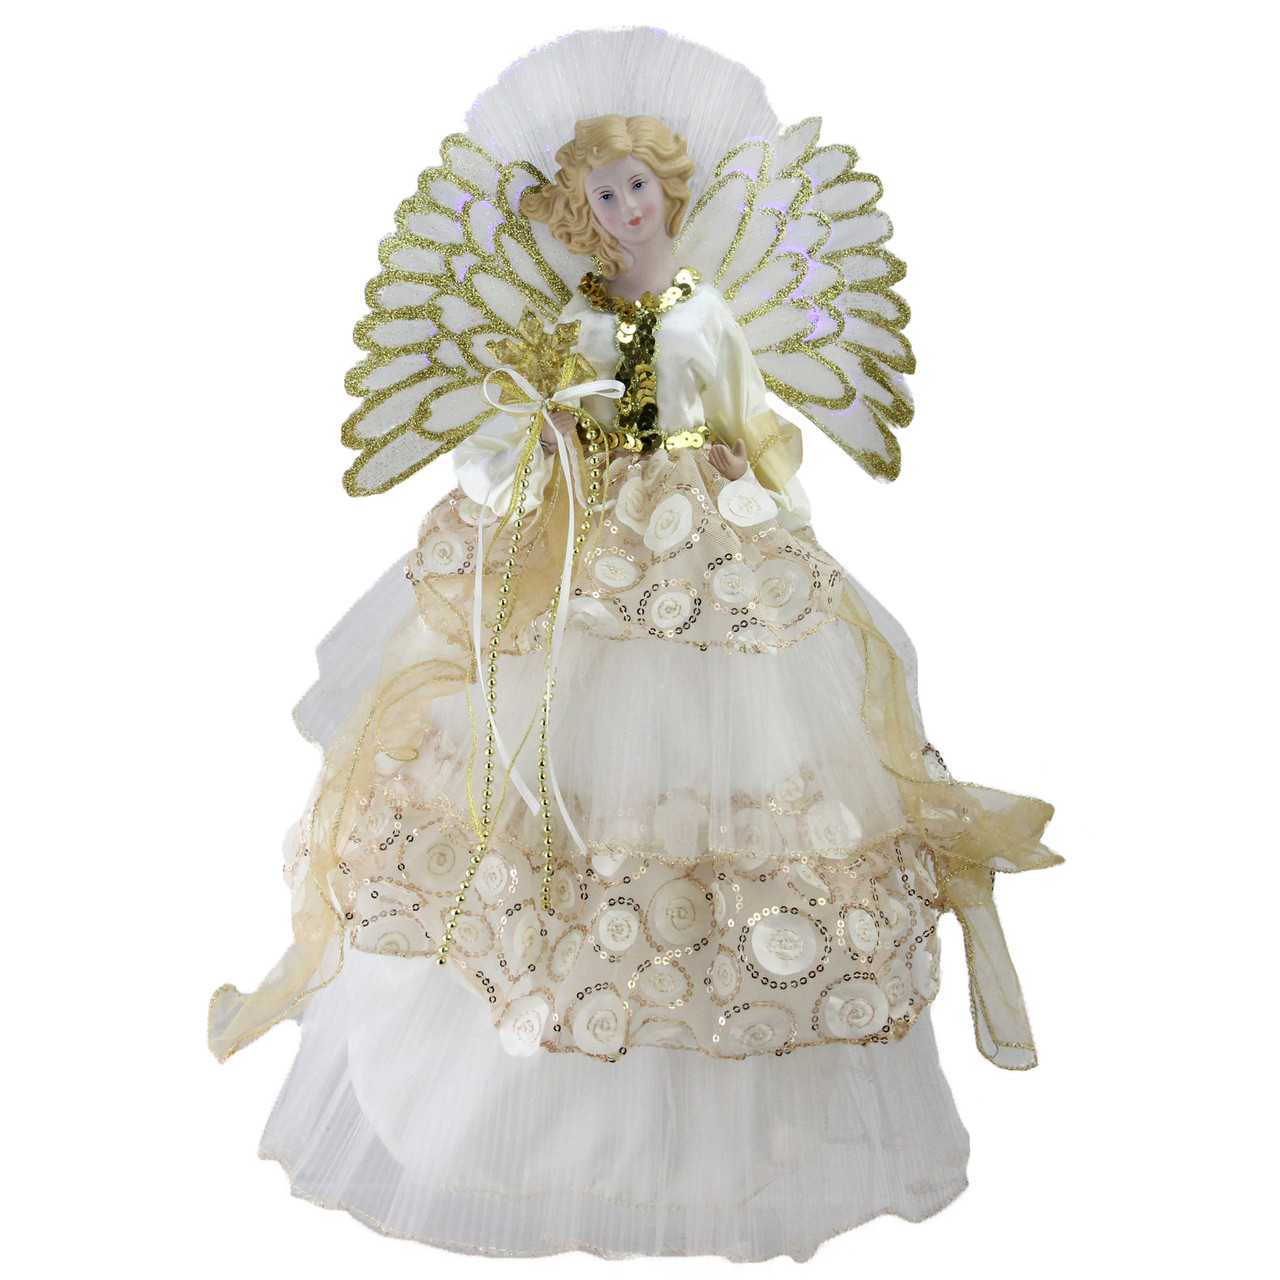 16 Lighted Fiber Optic Angel In Cream And Gold Sequined Gown Christmas Tree Topper 32623686